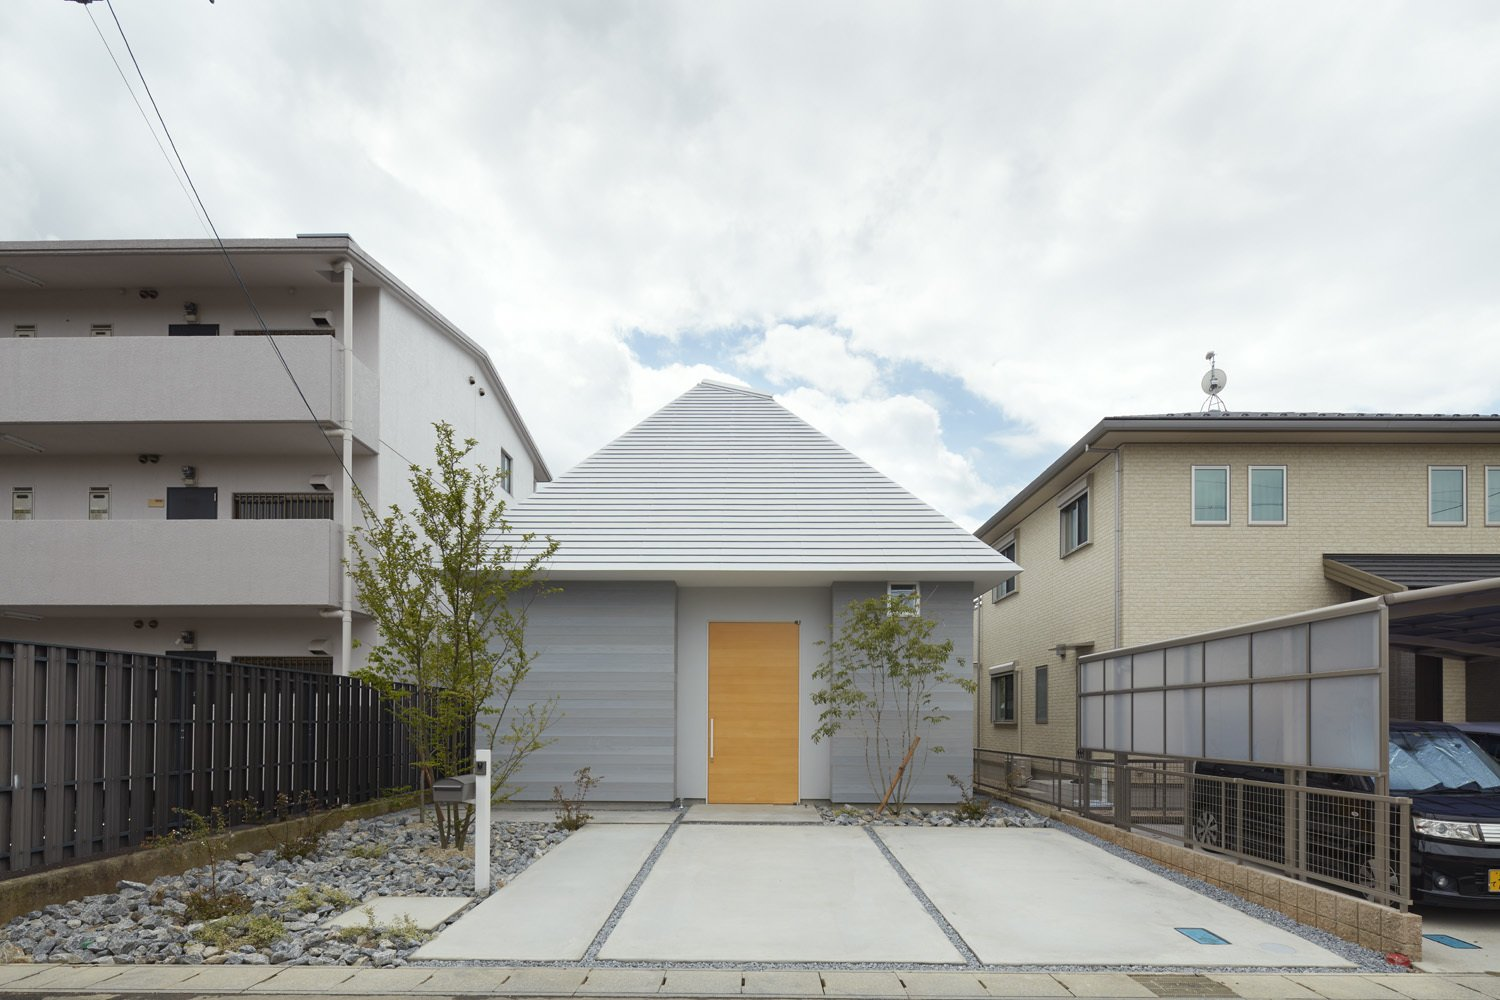 Photo 1 of 8 in House in Iwakura by Airhouse